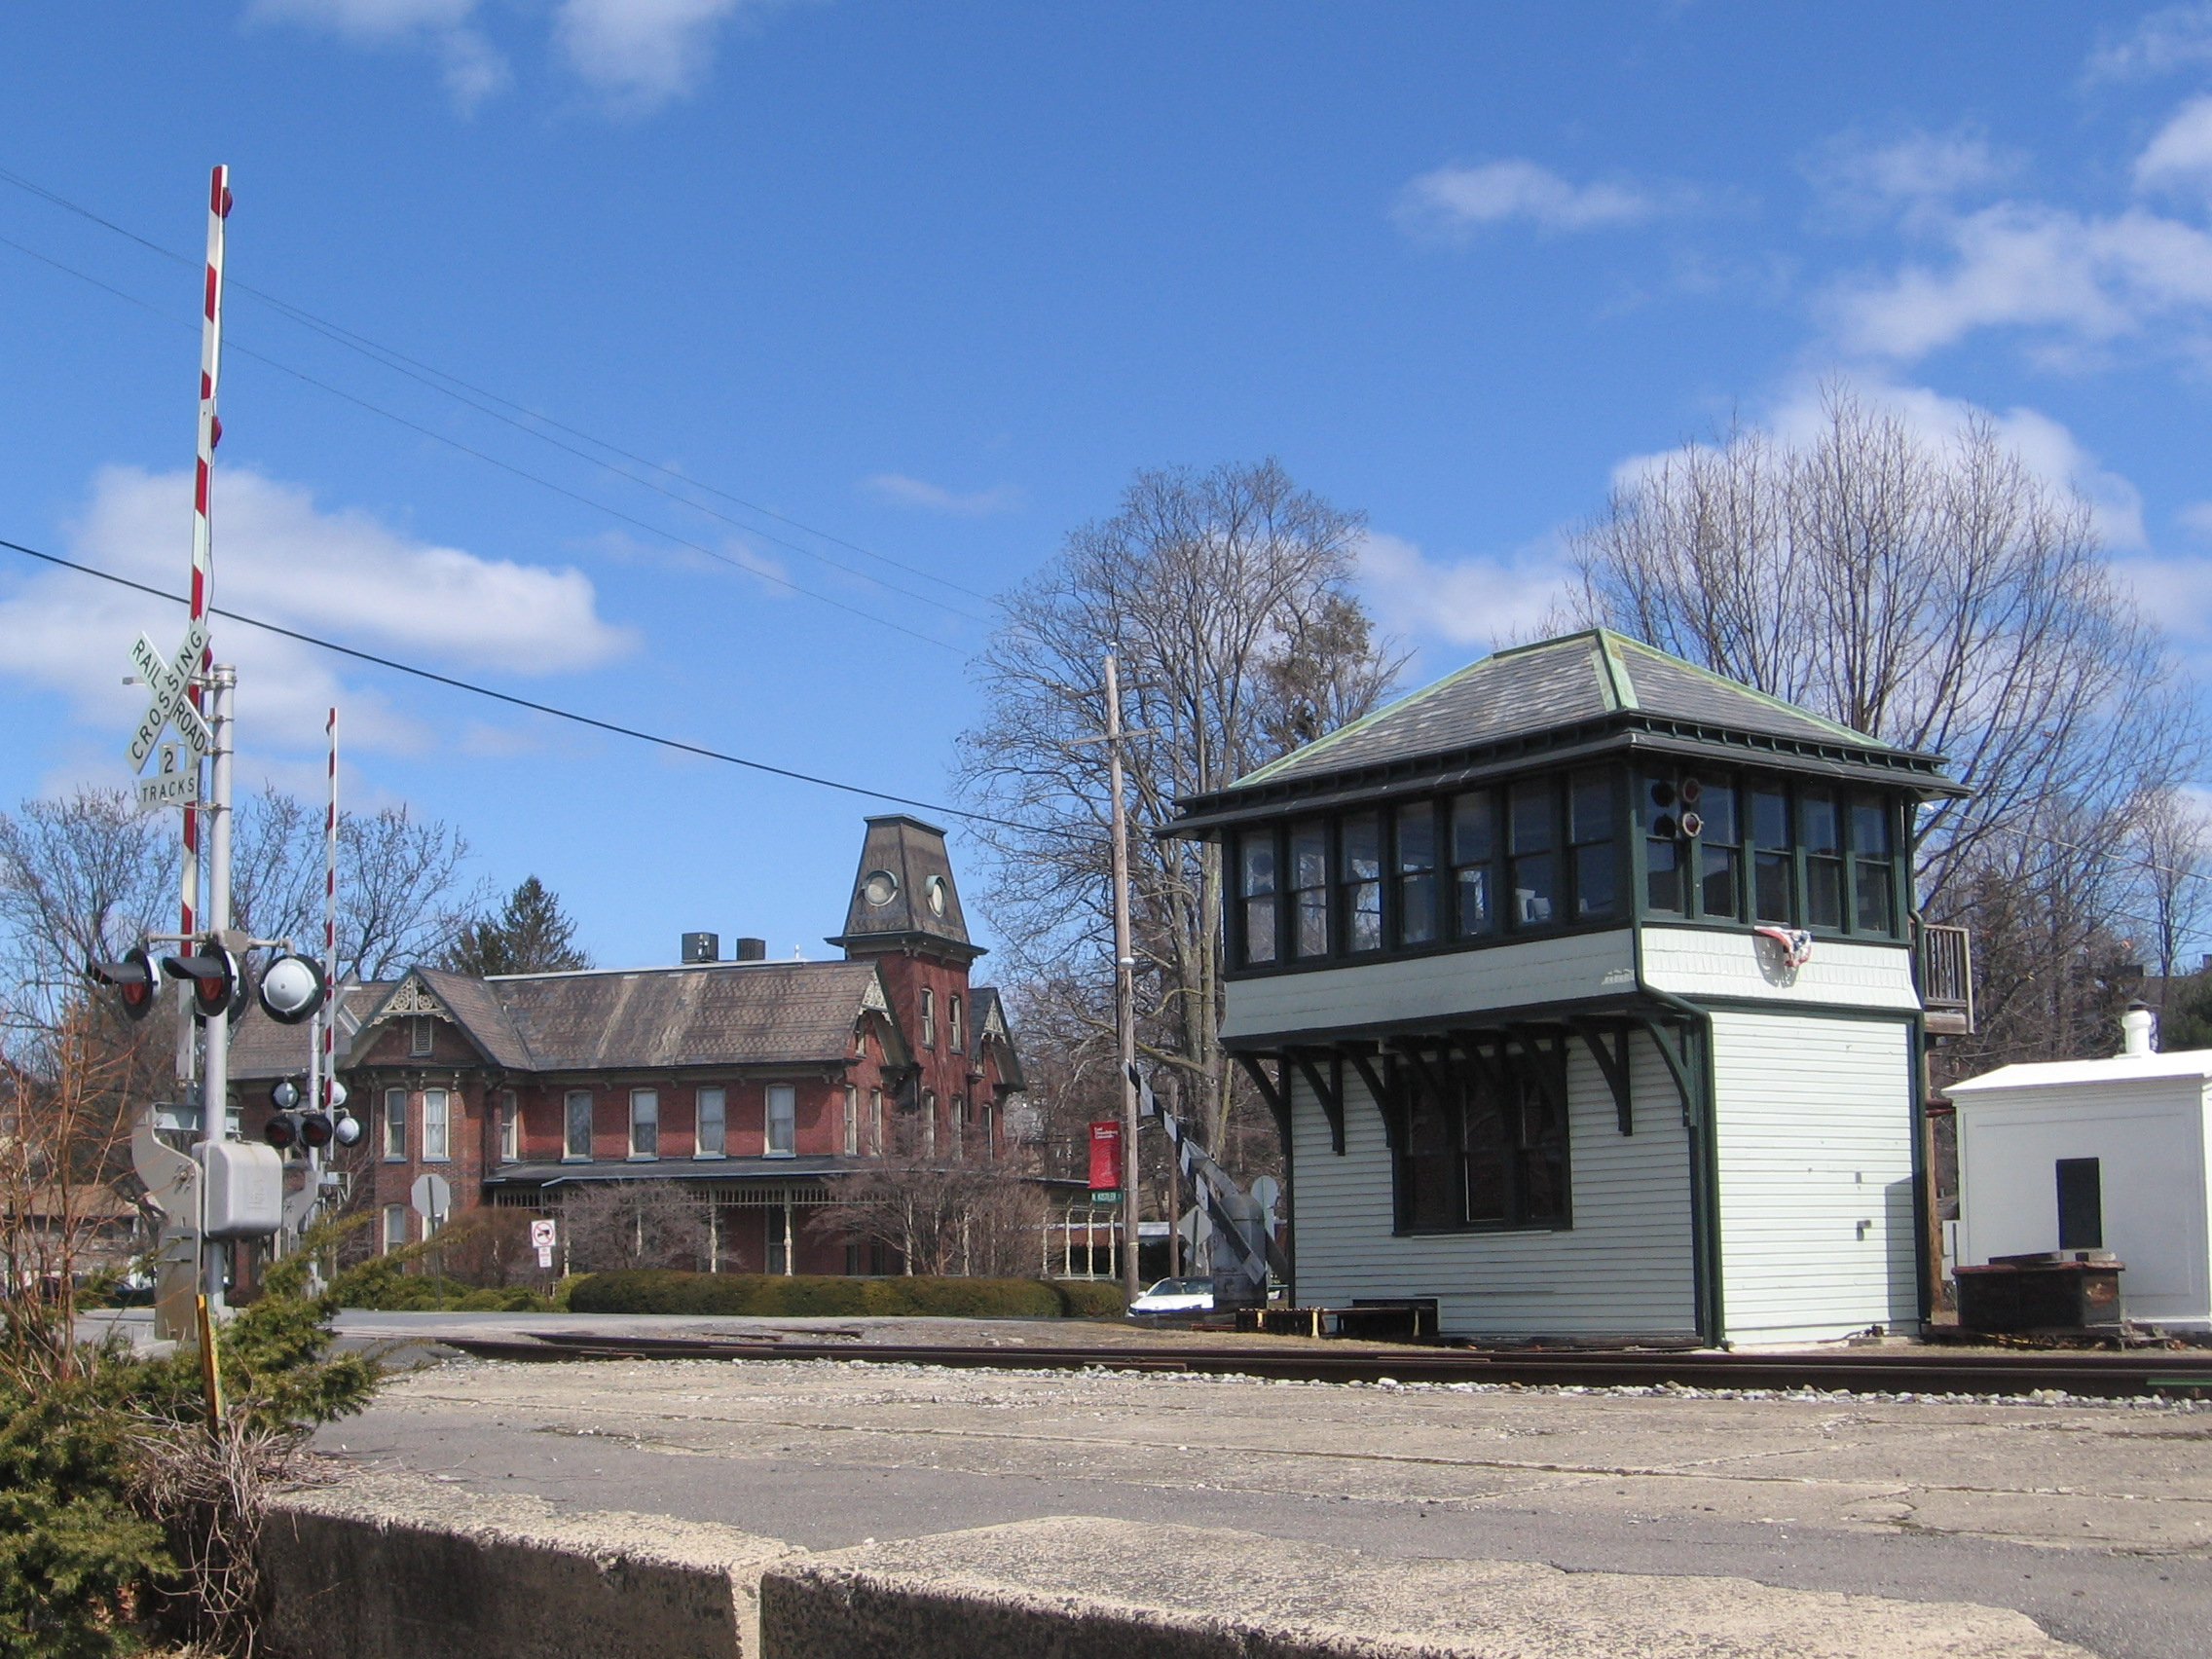 East Stroudsburg Railroad Tower